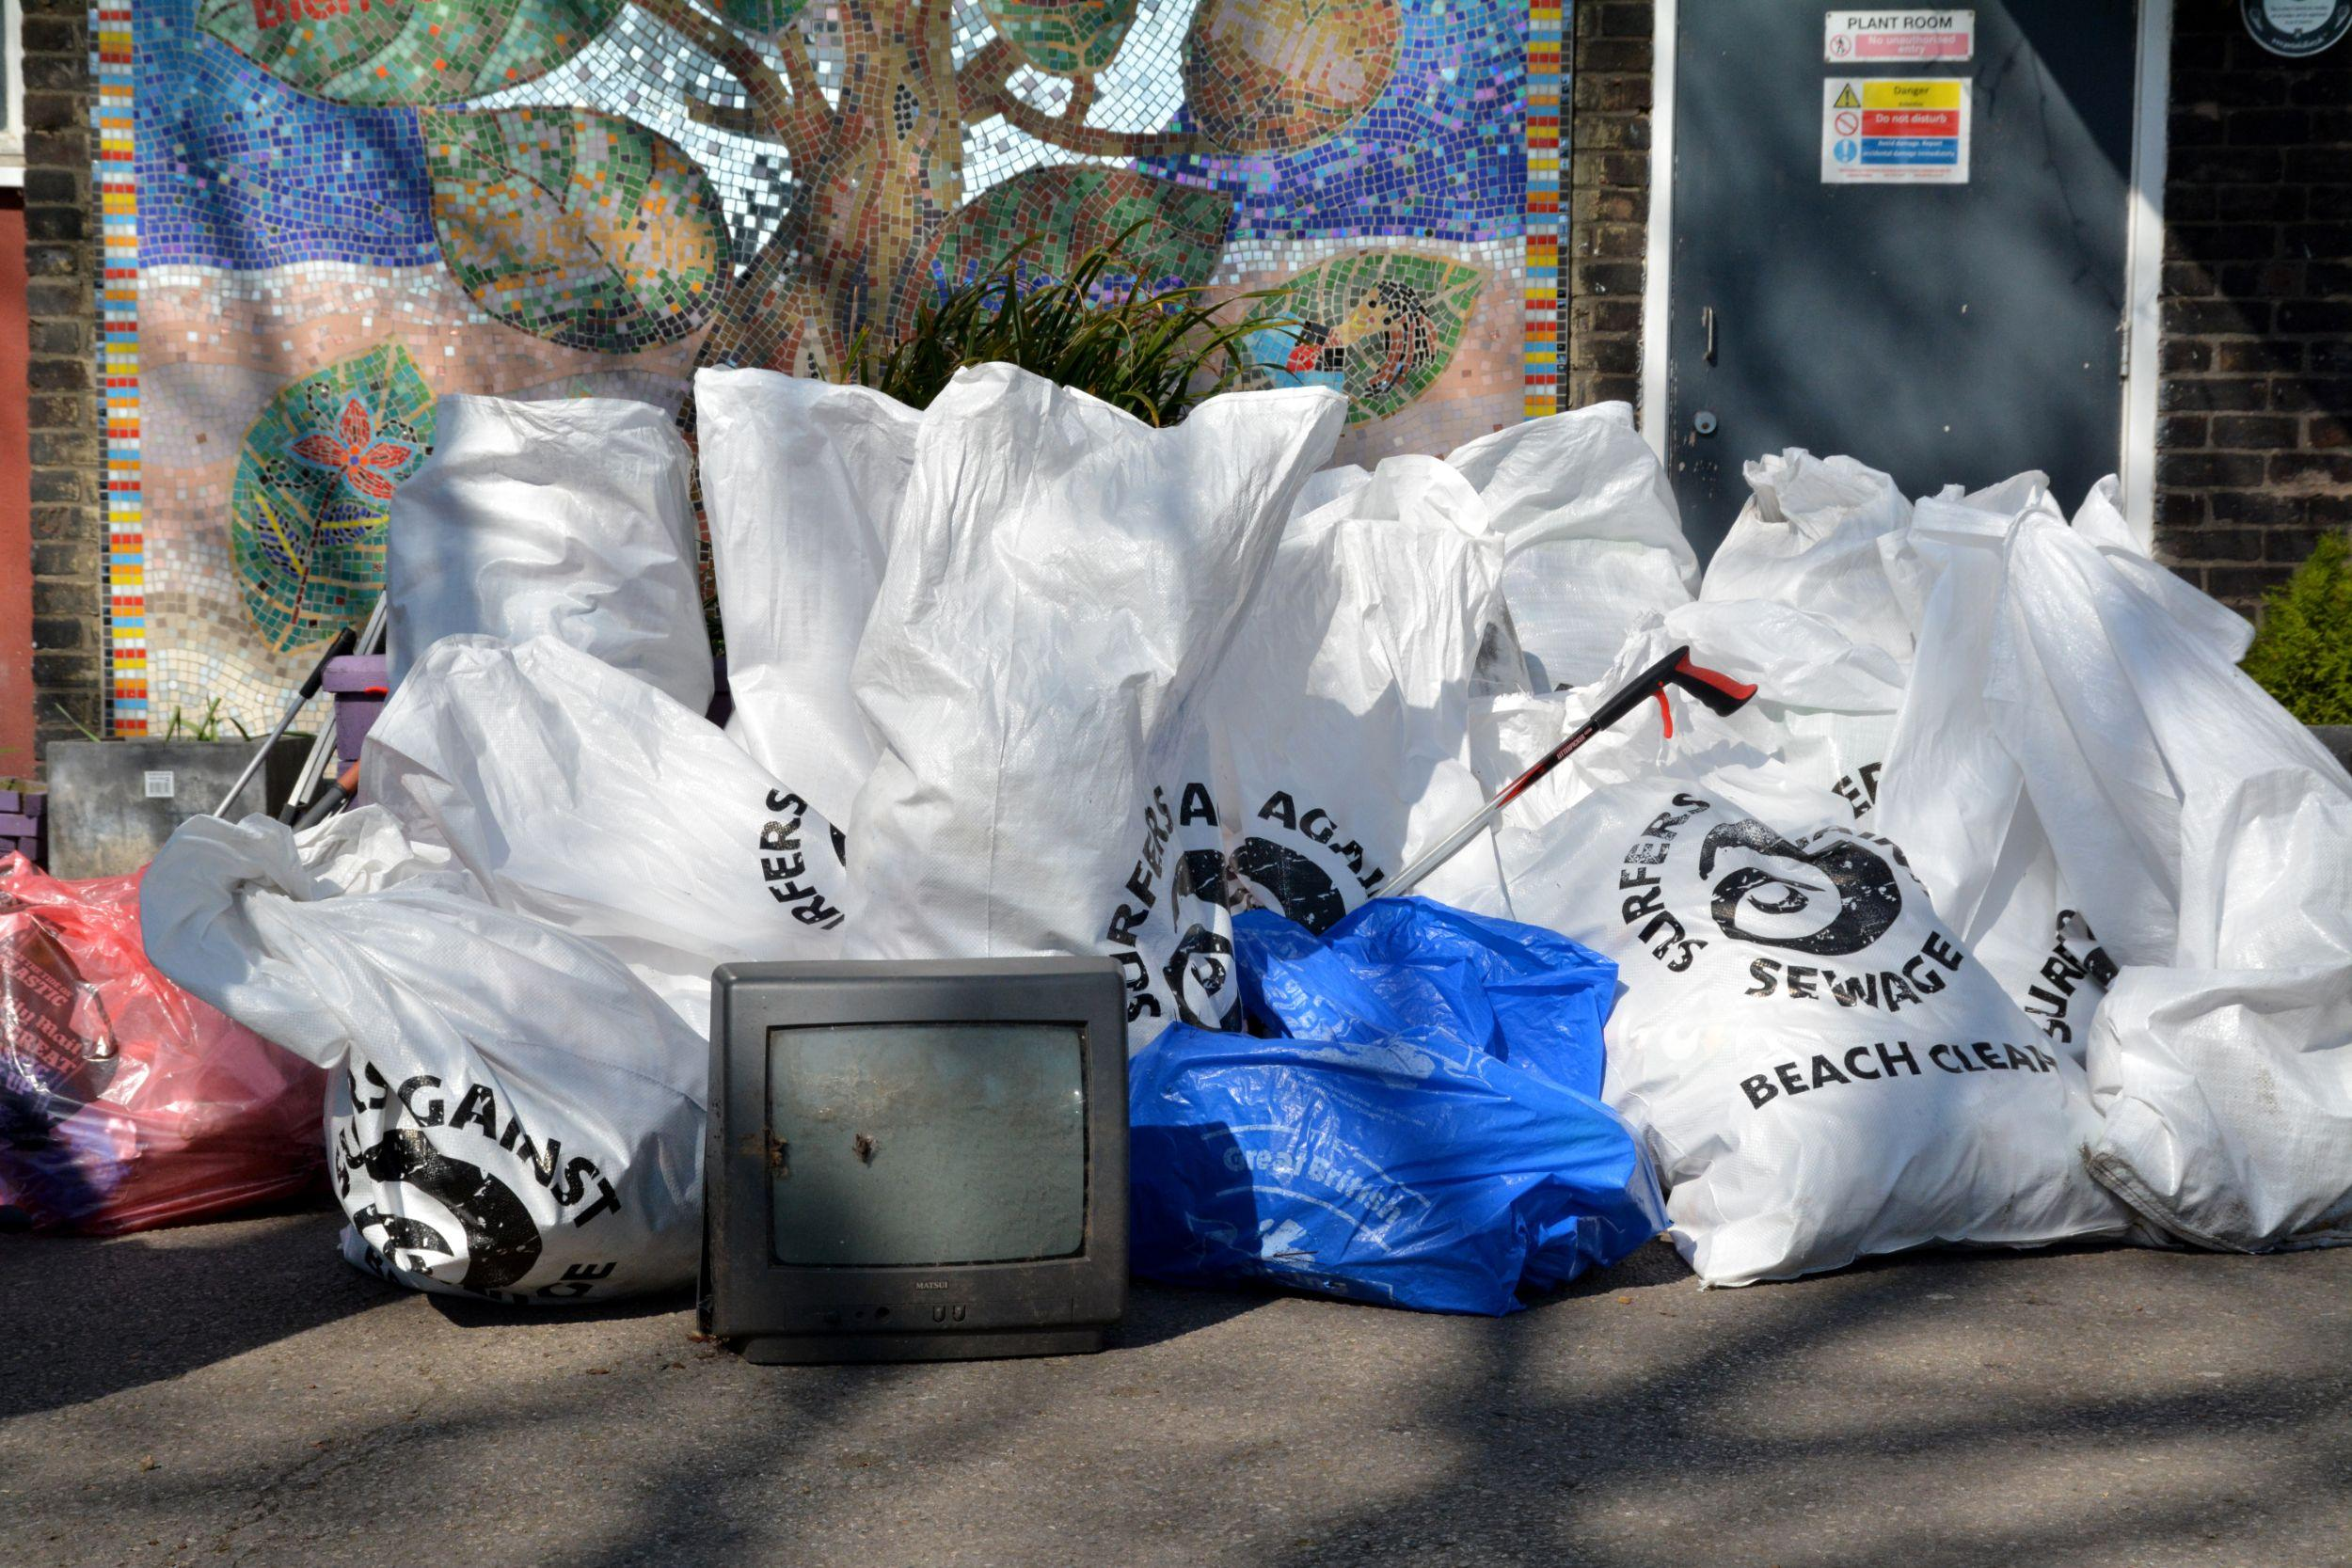 A collection of refuse sacks filled with litter